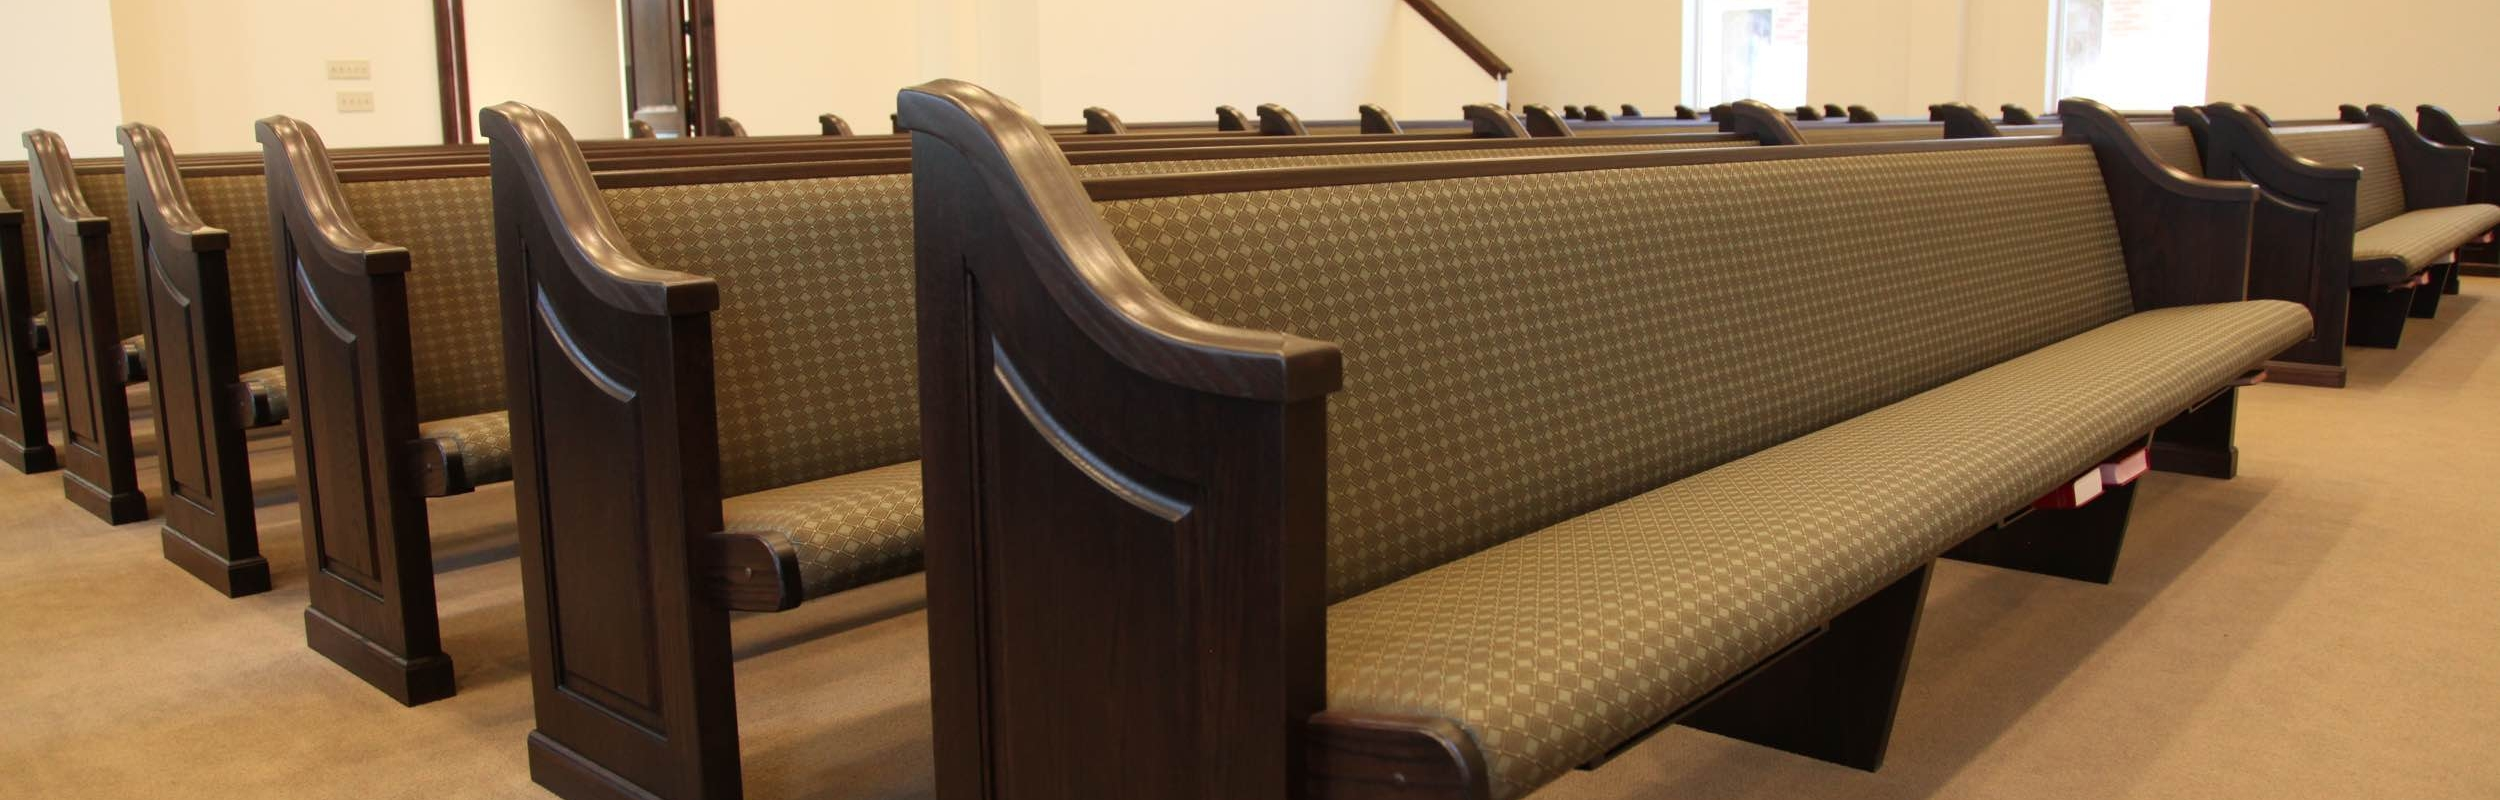 10 new pews - Small Church Sanctuary Design Ideas